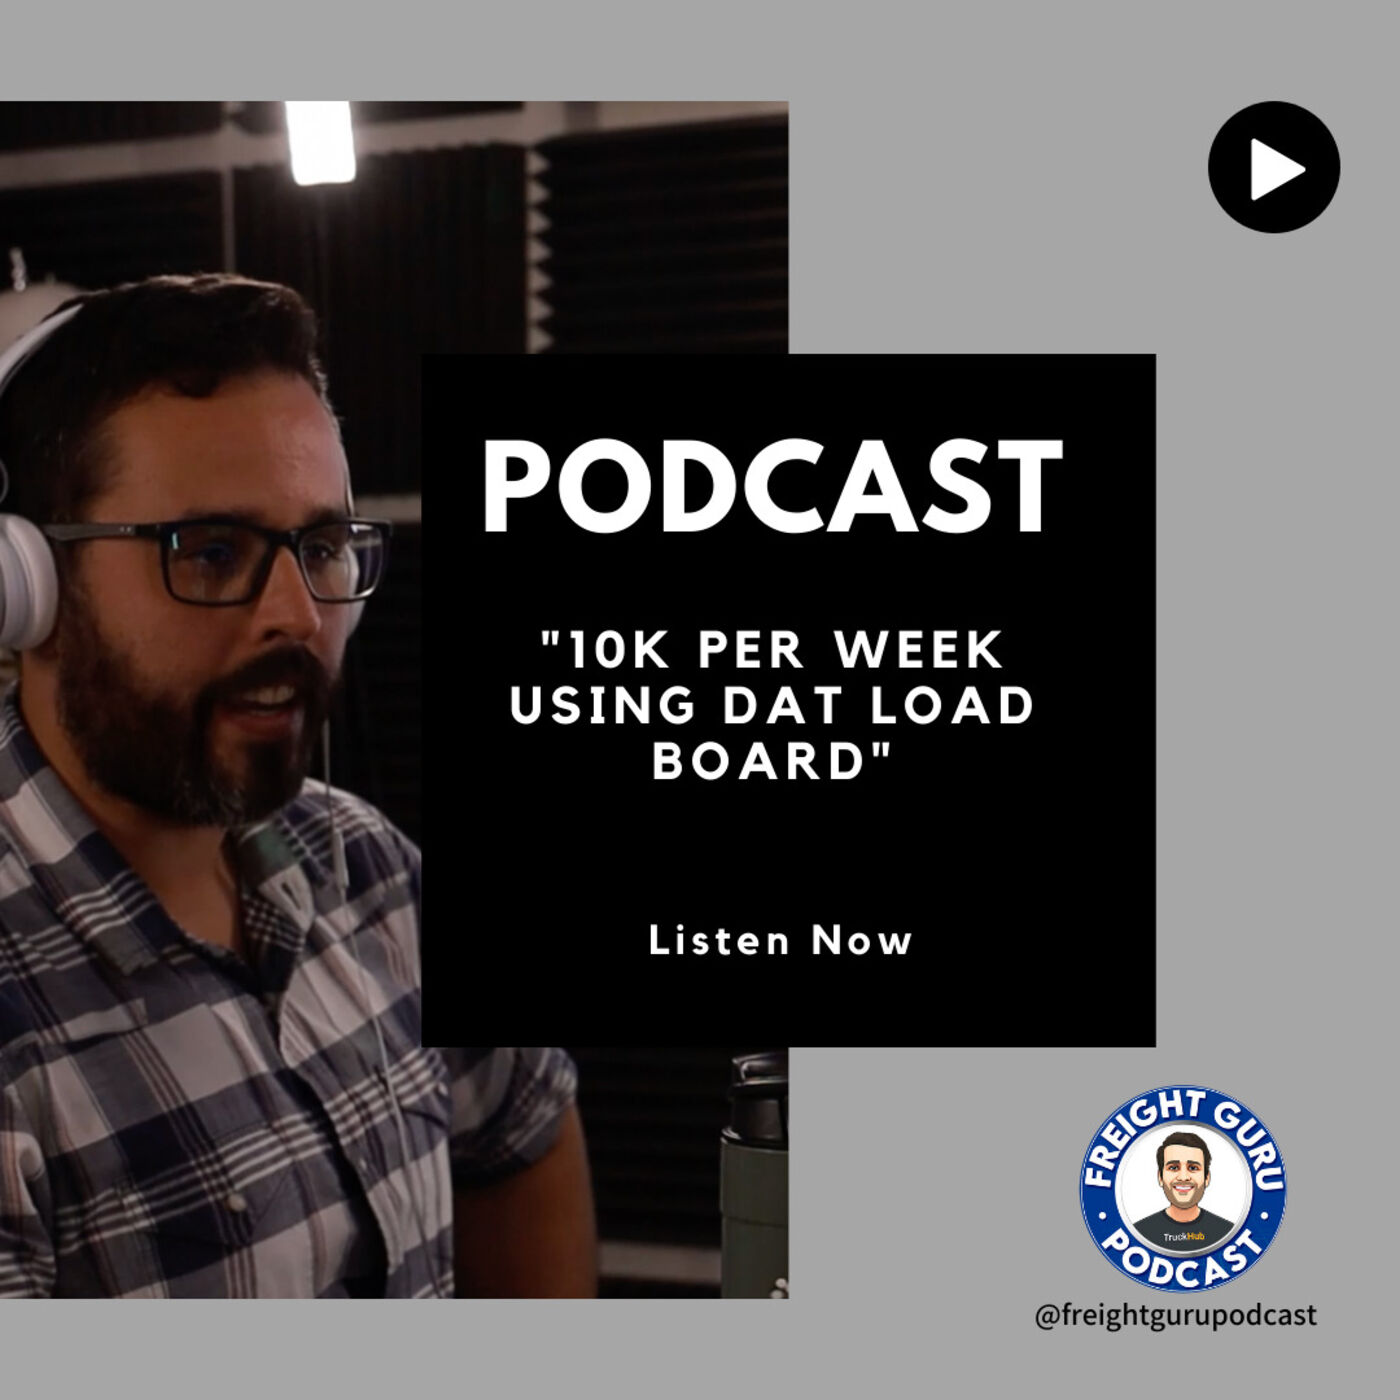 How to use DAT Load board to create $10K in Biz per week! - Freight Guru Podcast Ep. 22 PART 2